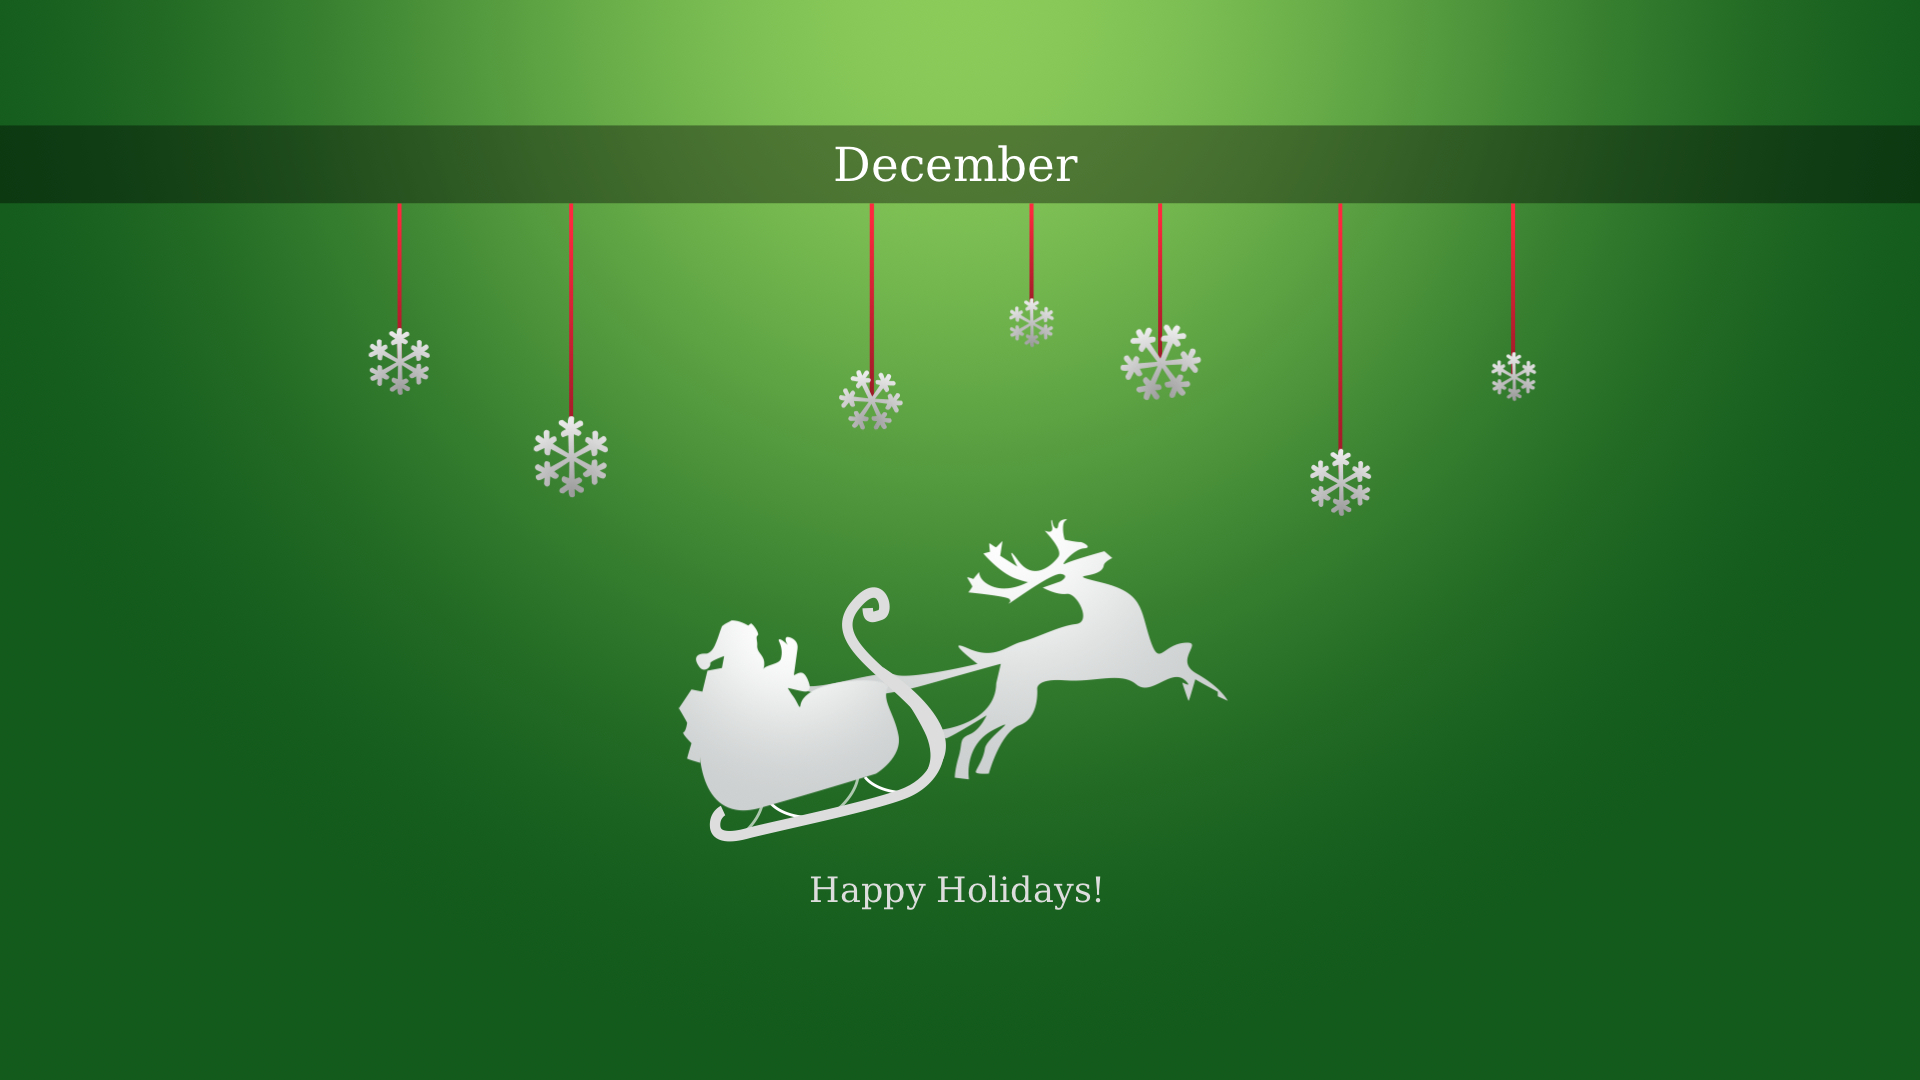 Happy December Holidays 559.1 Kb